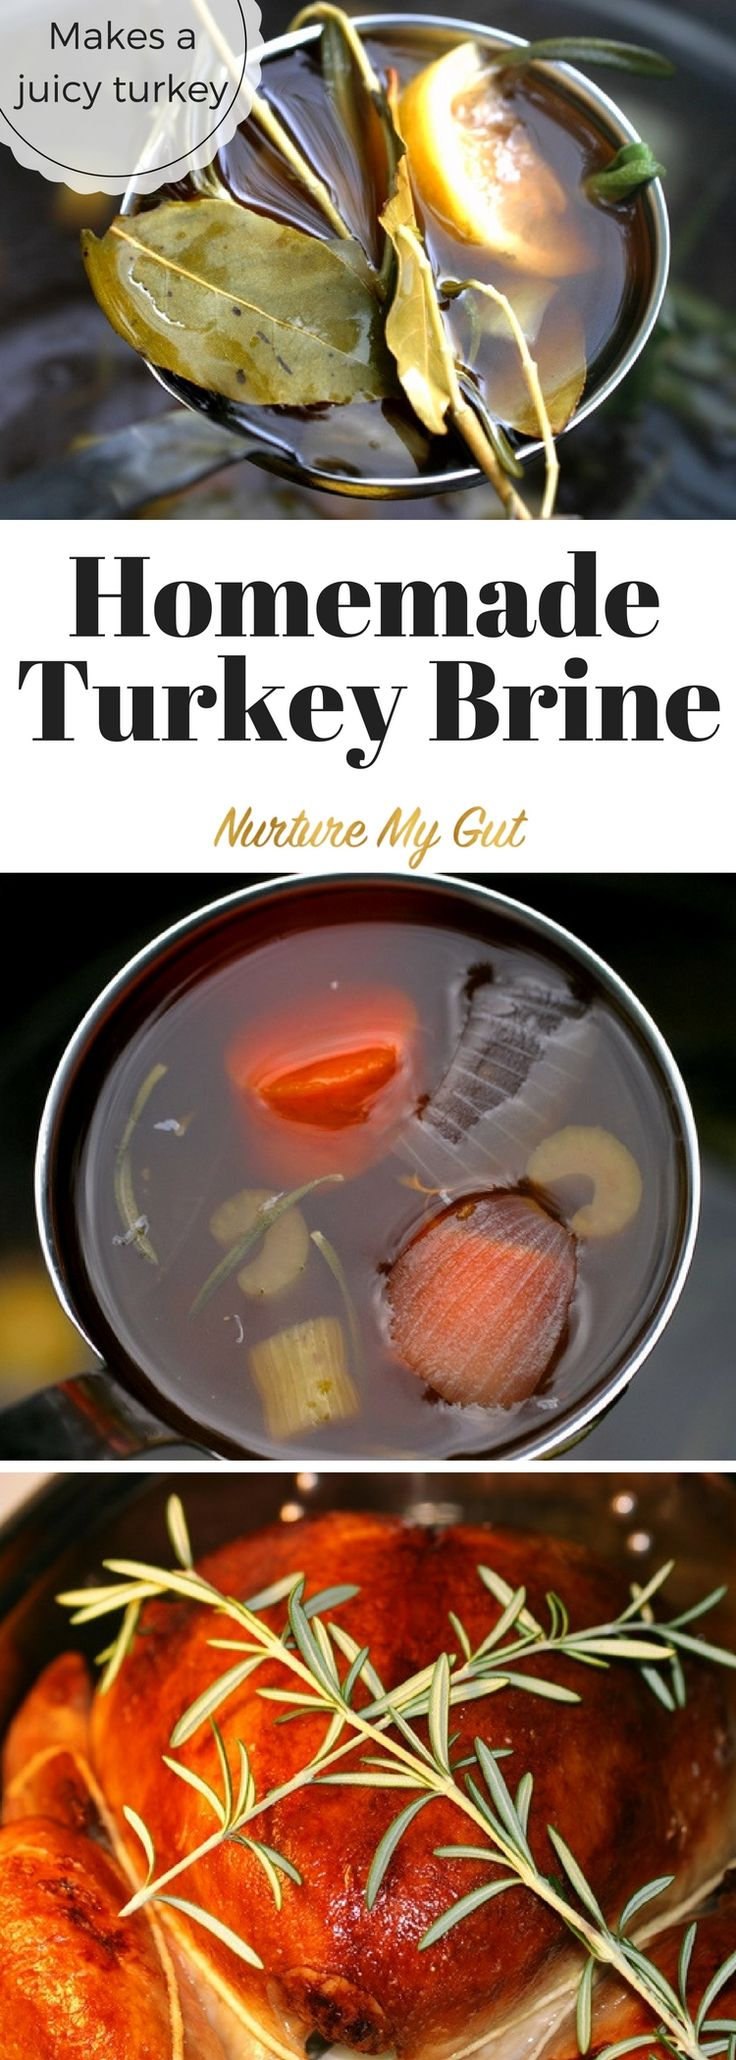 Easy brine recipes thanksgiving turkey